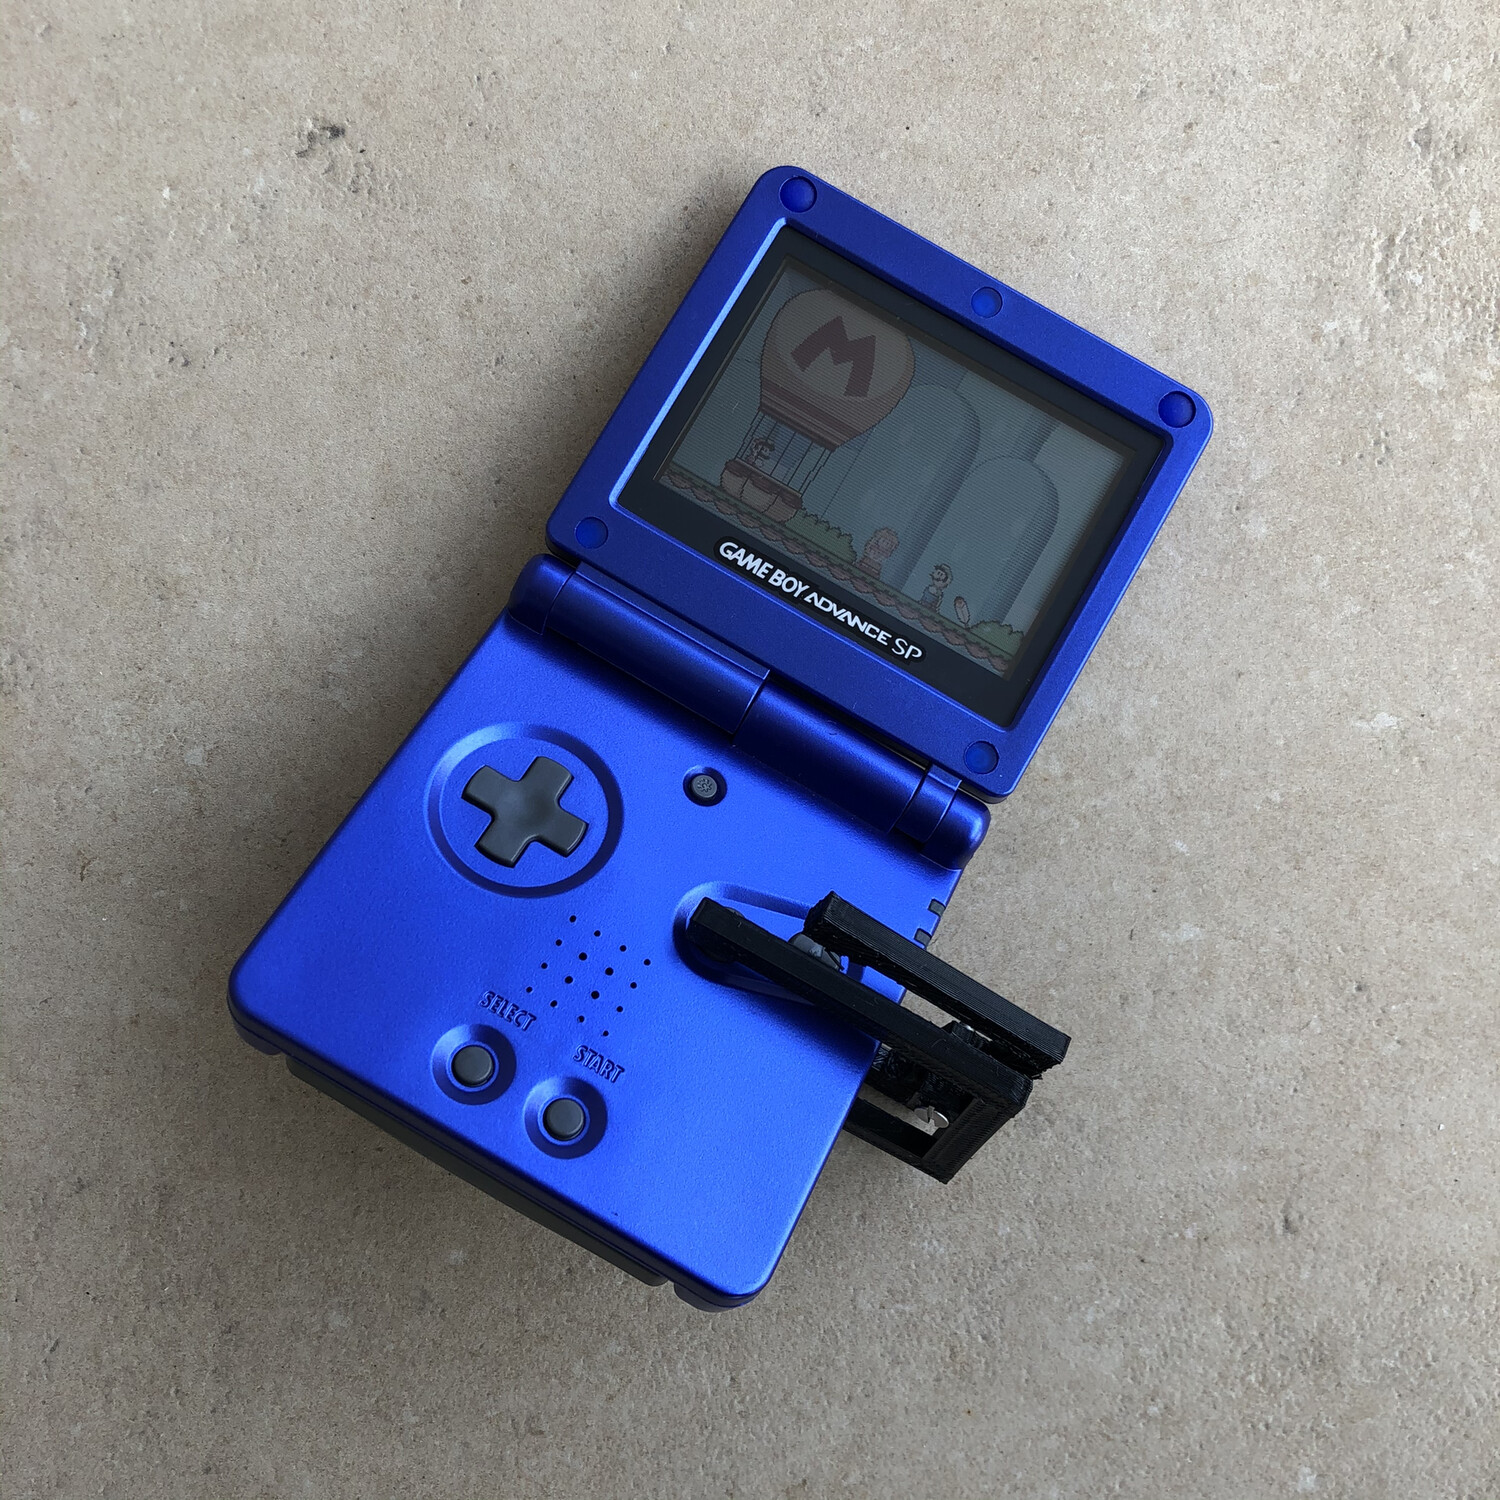 GameBoy Advance SP ONE HAND (Left)